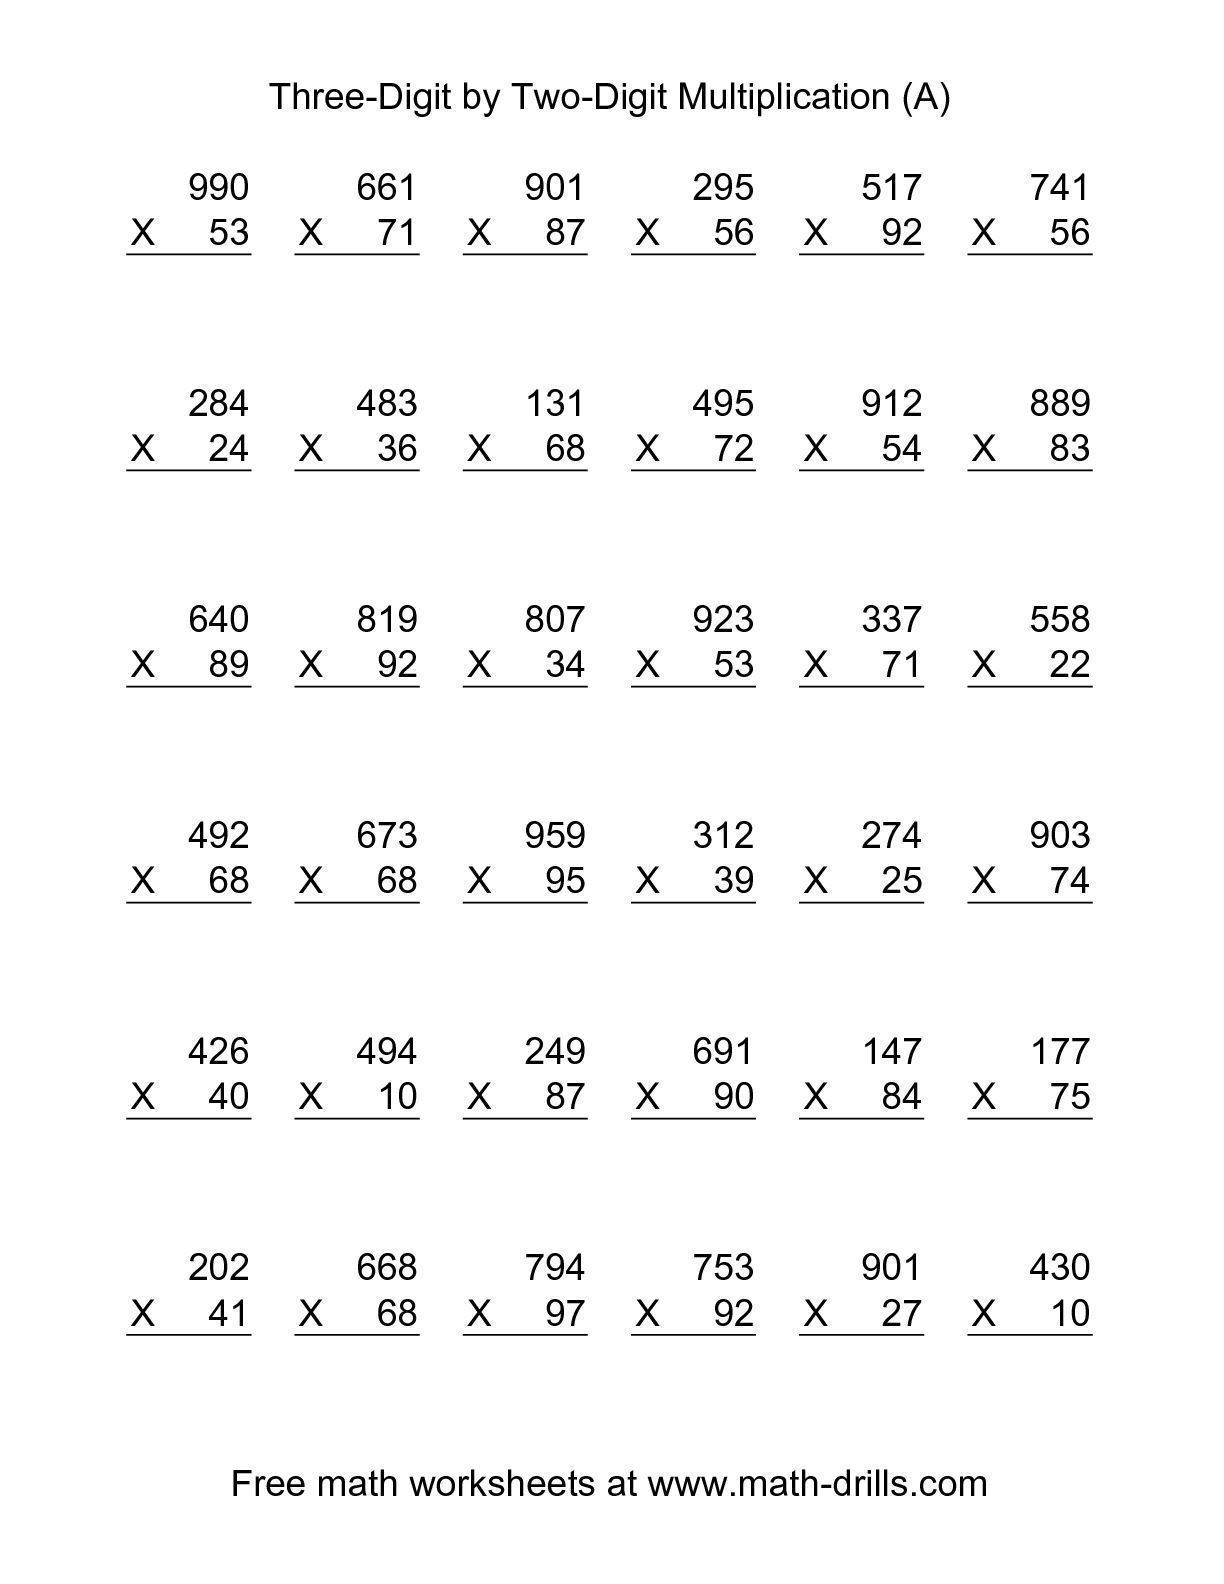 The Multiplying Threedigit By Twodigit   Per Page A Math  The Multiplying Threedigit By Twodigit   Per Page A Math Worksheet  From The Multiplication Worksheet Page At Mathdrillscom